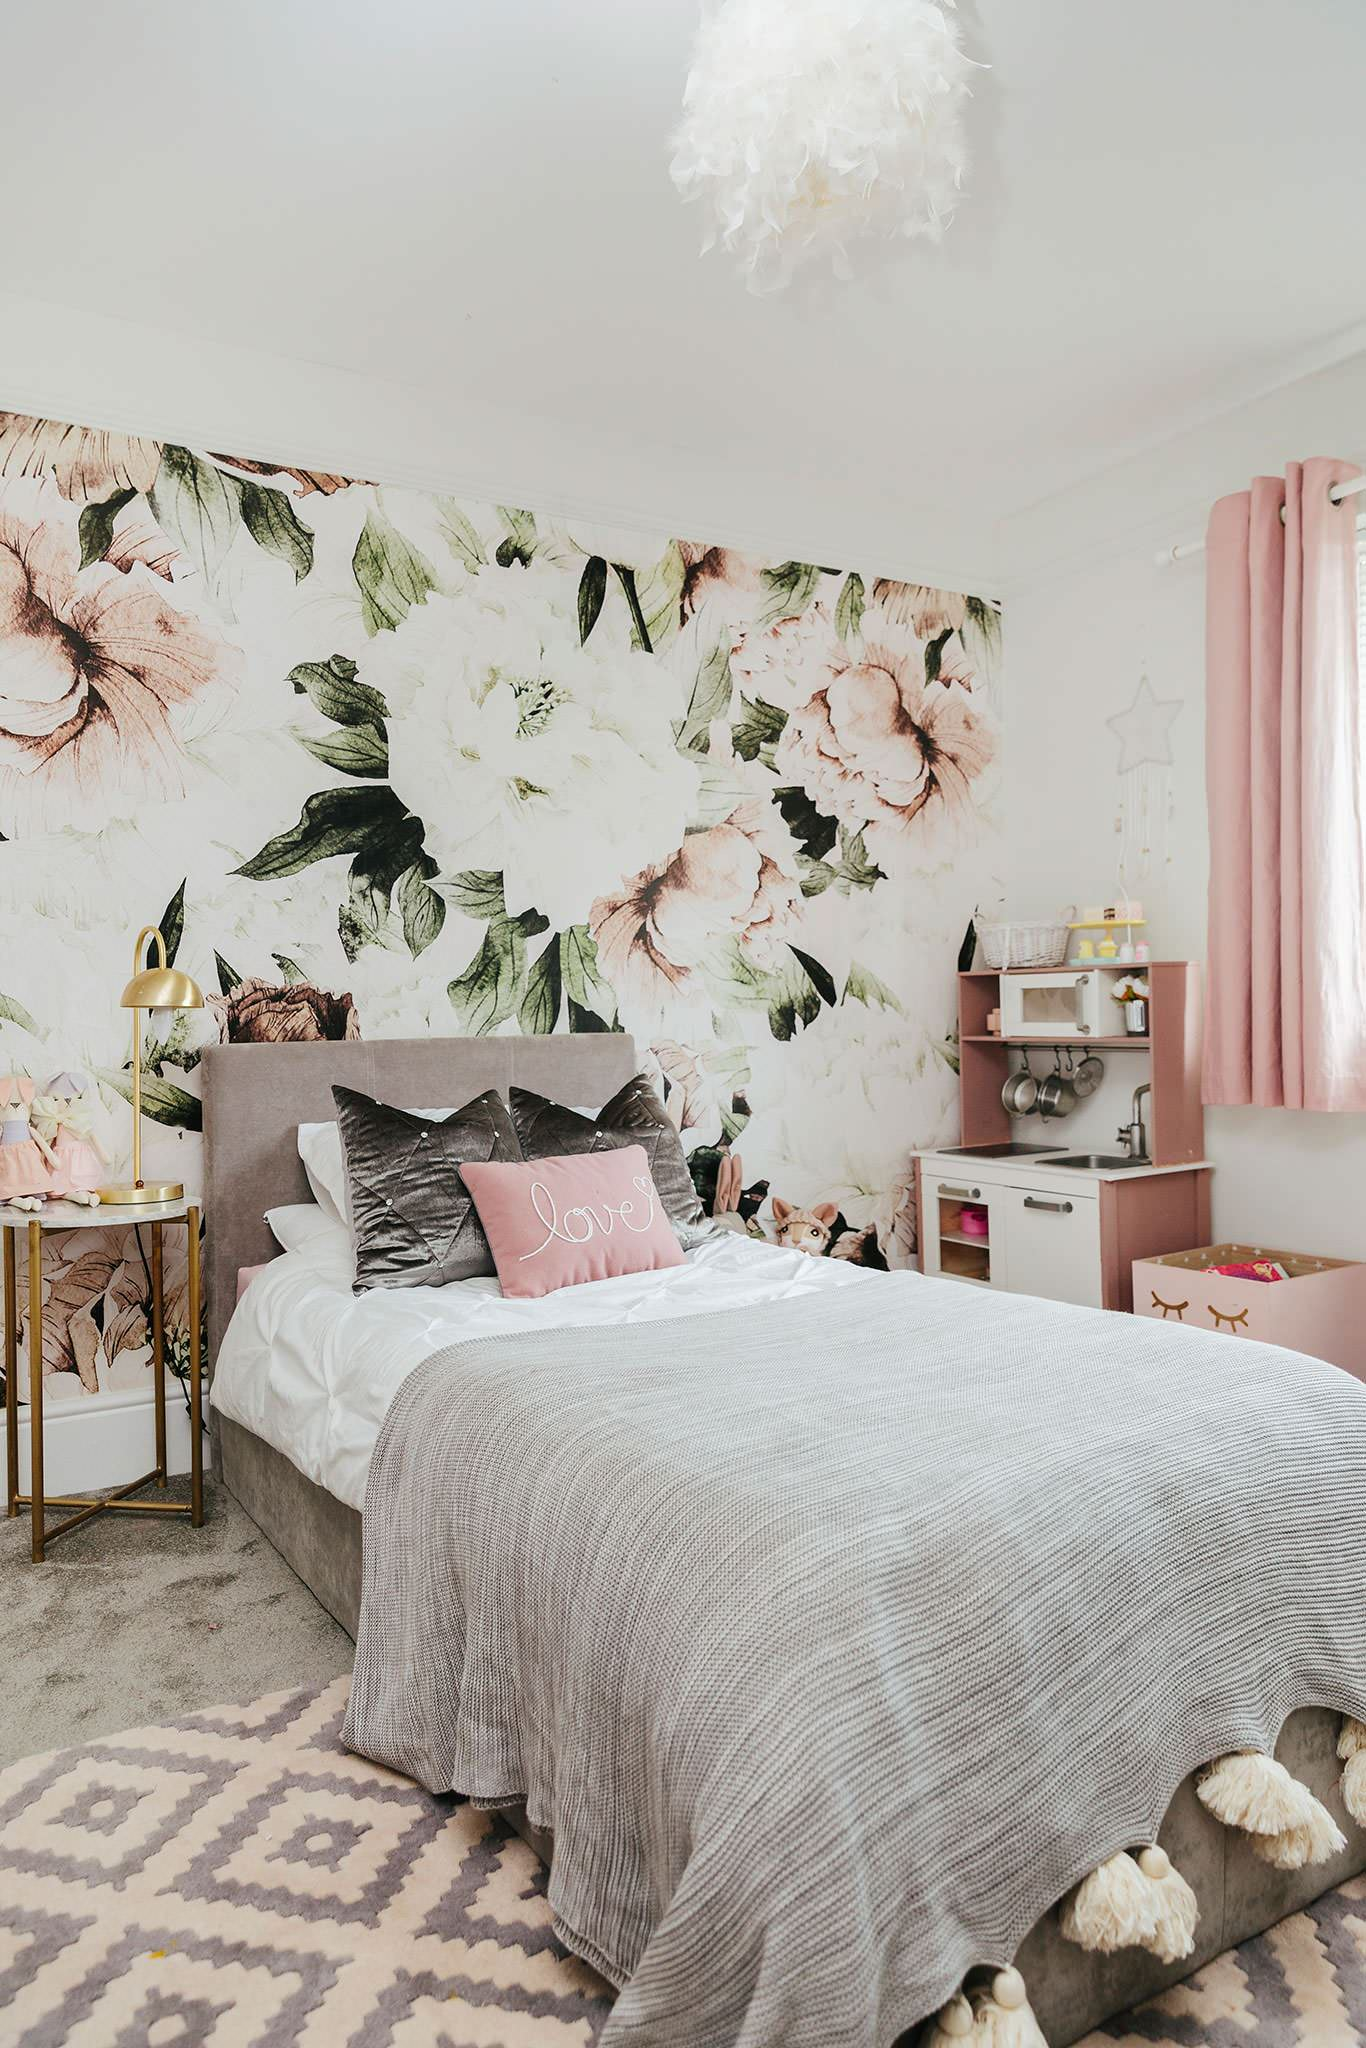 75 Beautiful Kids Room Pictures Ideas Style Shabby Chic Style March 2021 Houzz